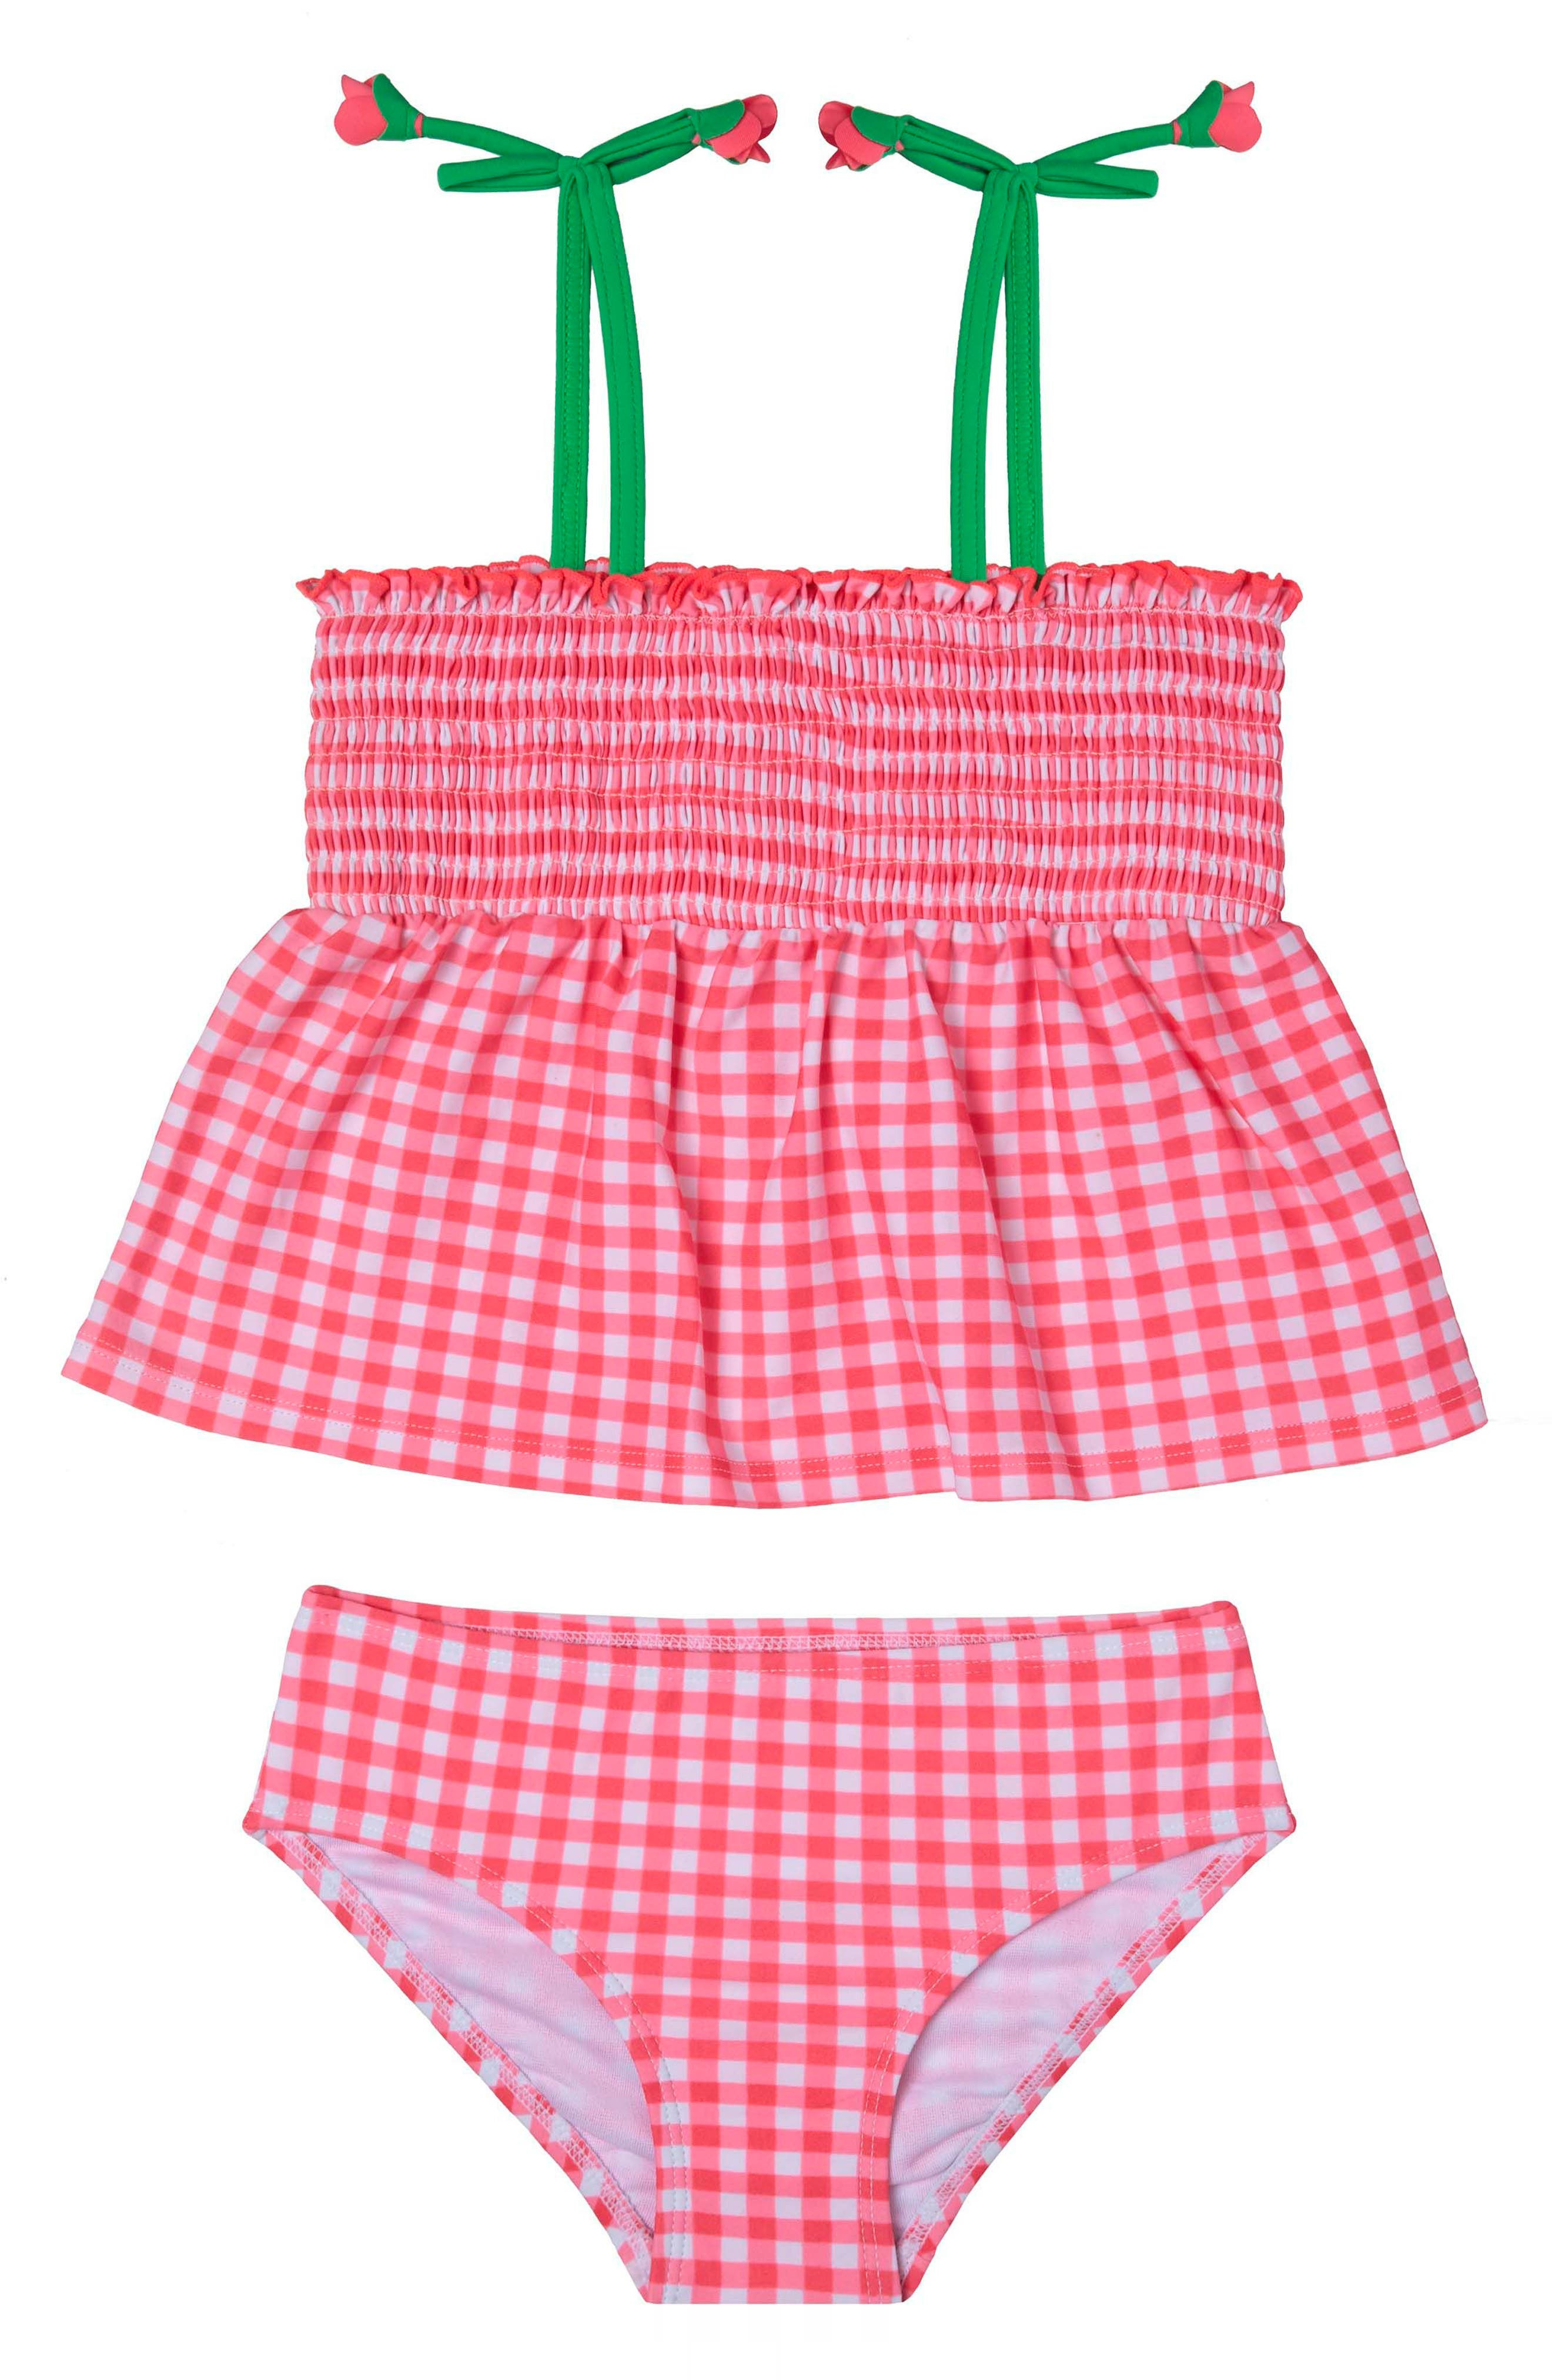 Picnic Gingham Two-Piece Swimsuit,                         Main,                         color, Red